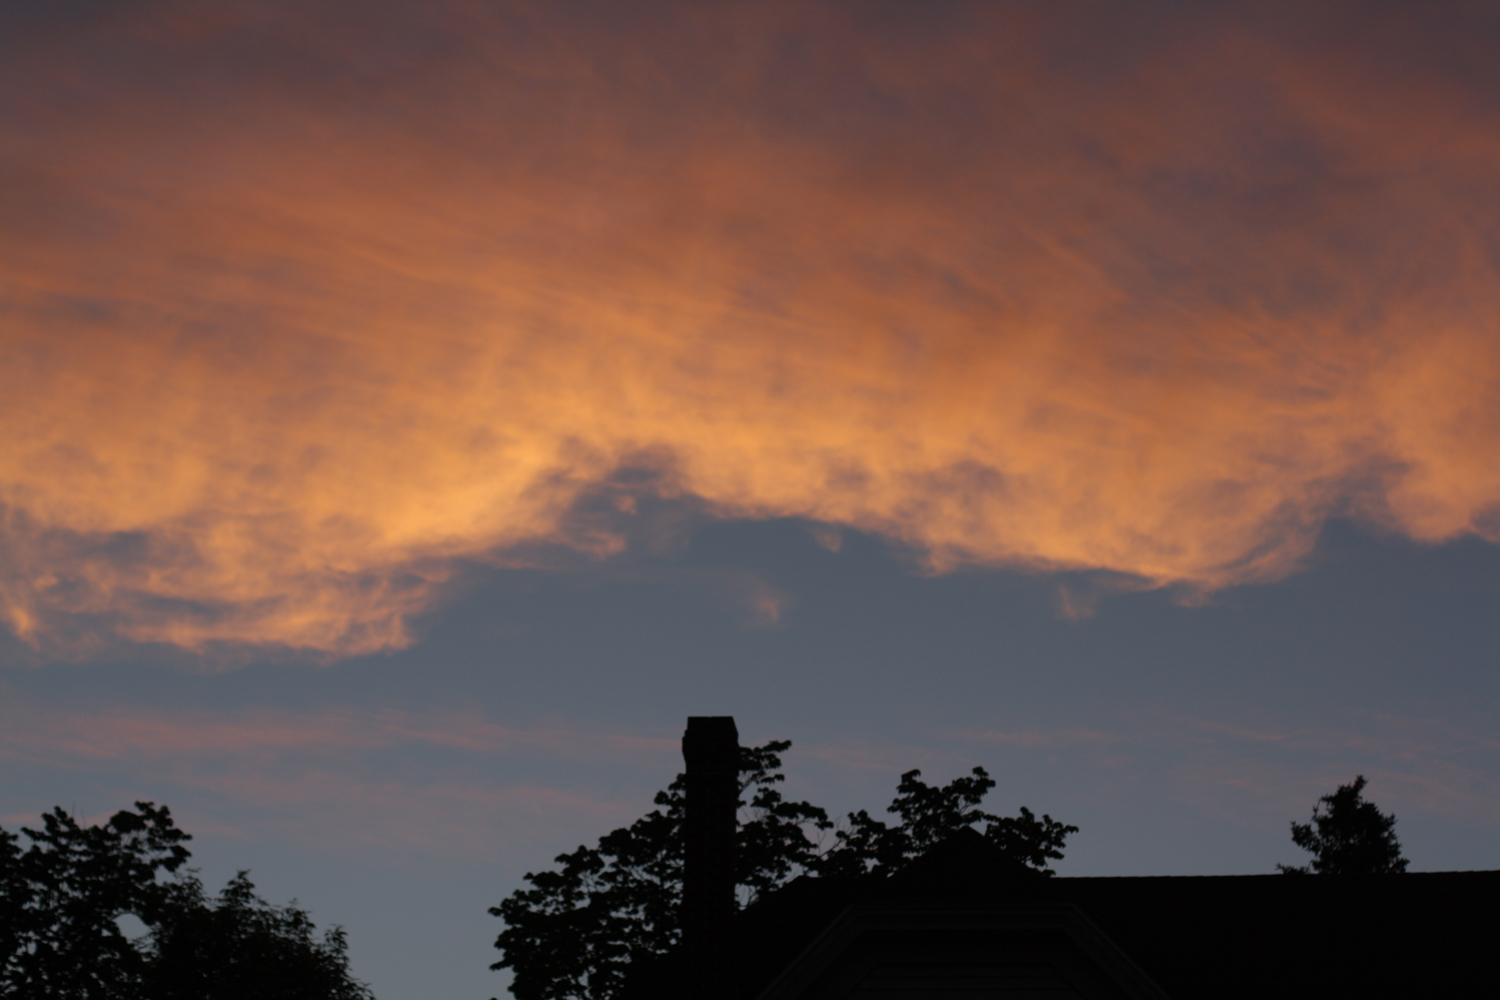 B16_Jul02_July_Clouds_Sunset.jpg